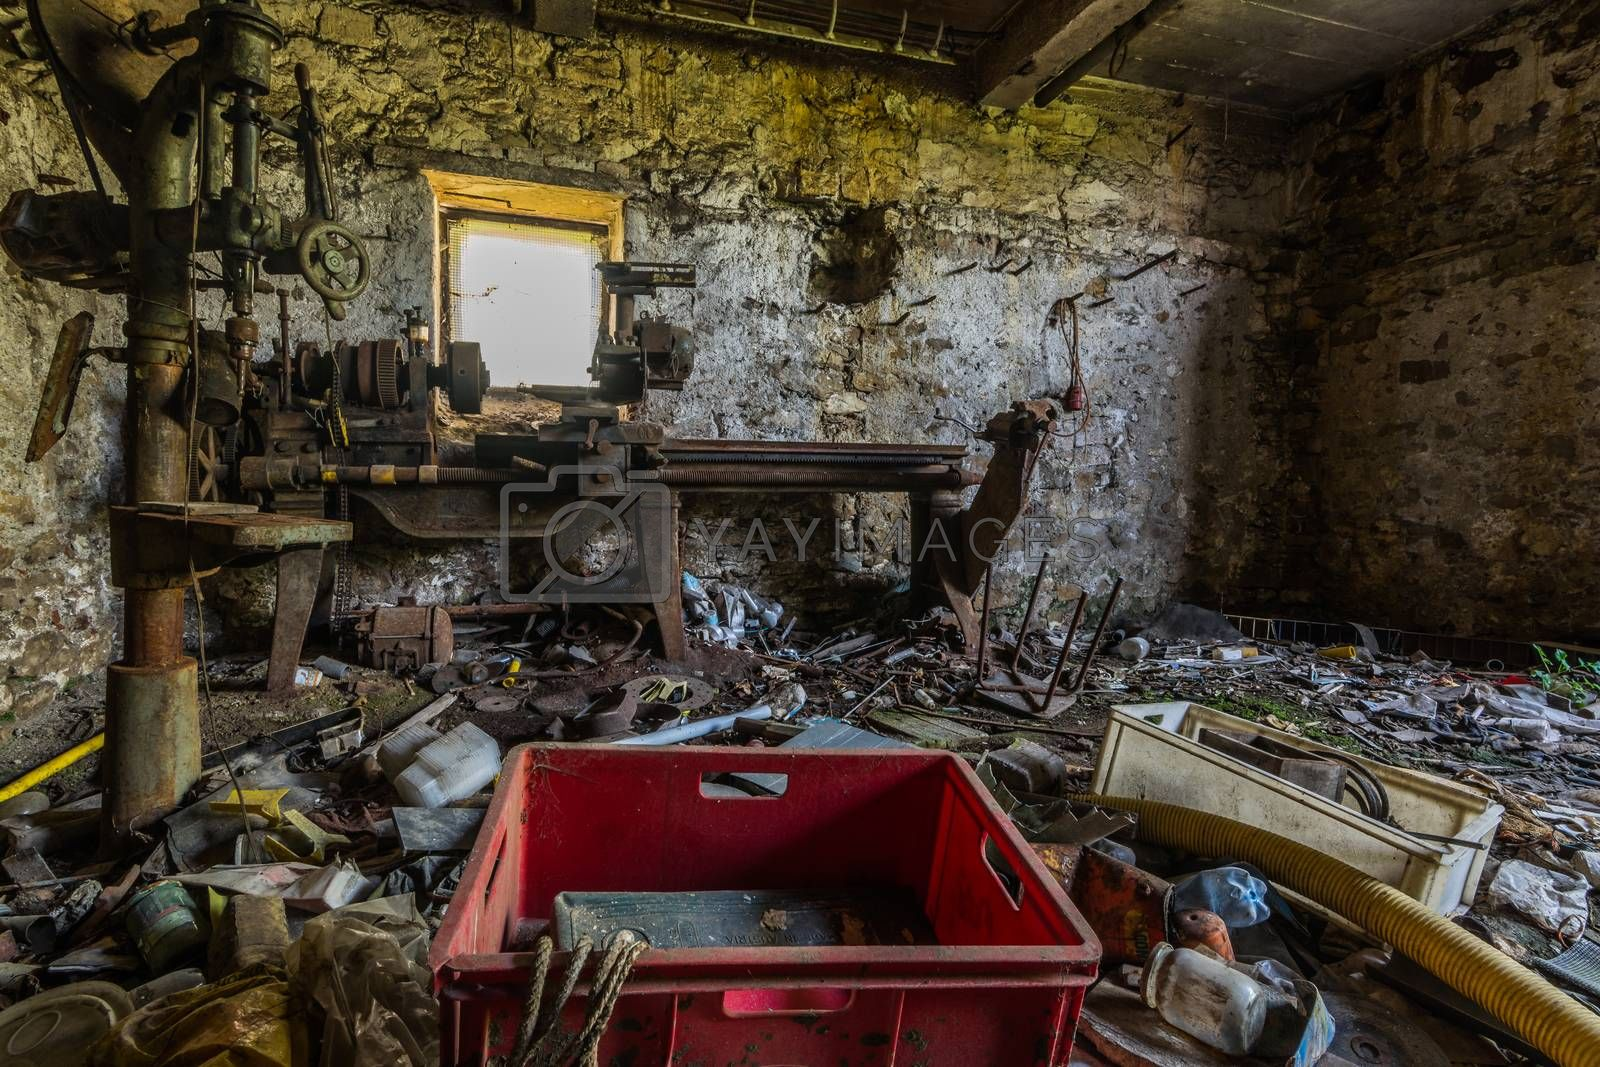 Old lathe in a workshop of an abandoned house